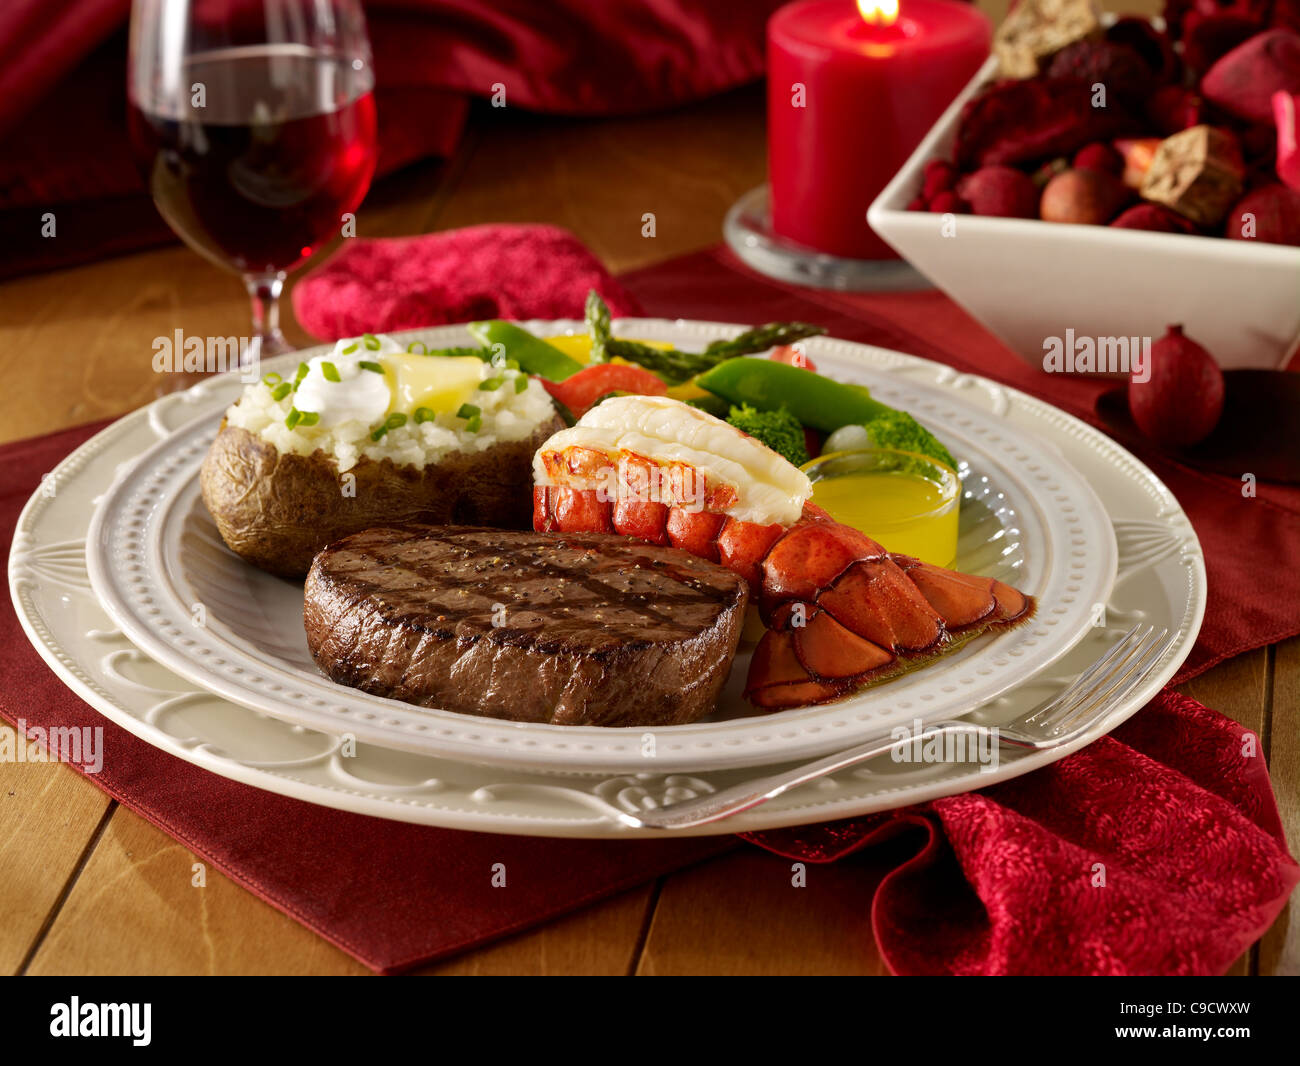 Gourmet Steak And Lobster Dinner | www.pixshark.com - Images Galleries With A Bite!